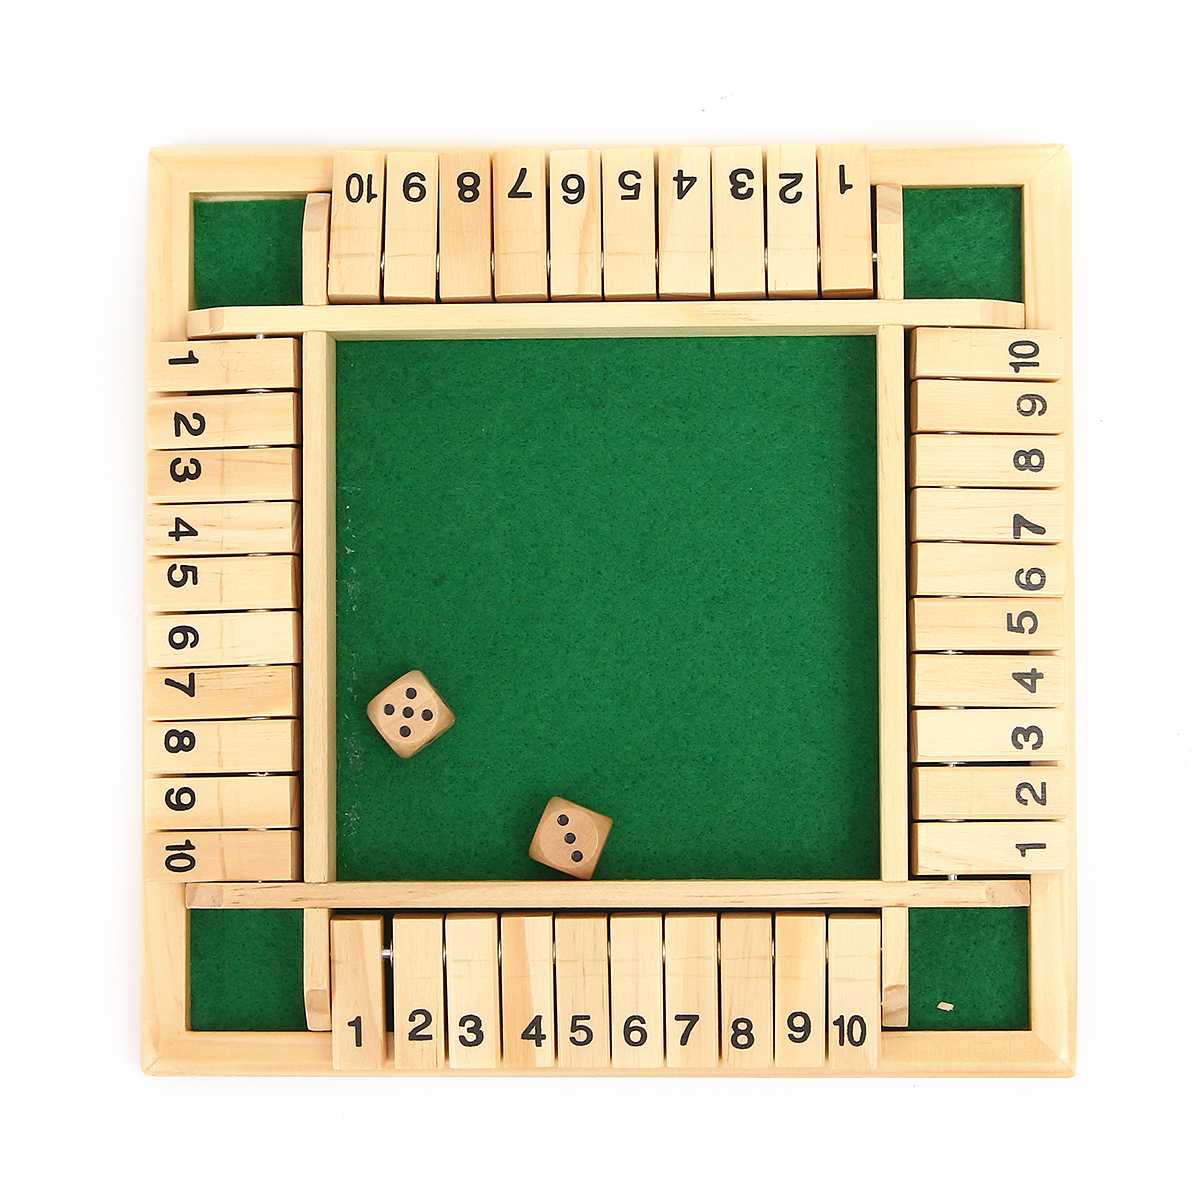 Green Wooden Shut The Box Board Game Toy Bar Club Dice Number Drinking Entertainment Toy Kits Kids Learn Math Number Prop GiftsGreen Wooden Shut The Box Board Game Toy Bar Club Dice Number Drinking Entertainment Toy Kits Kids Learn Math Number Prop Gifts